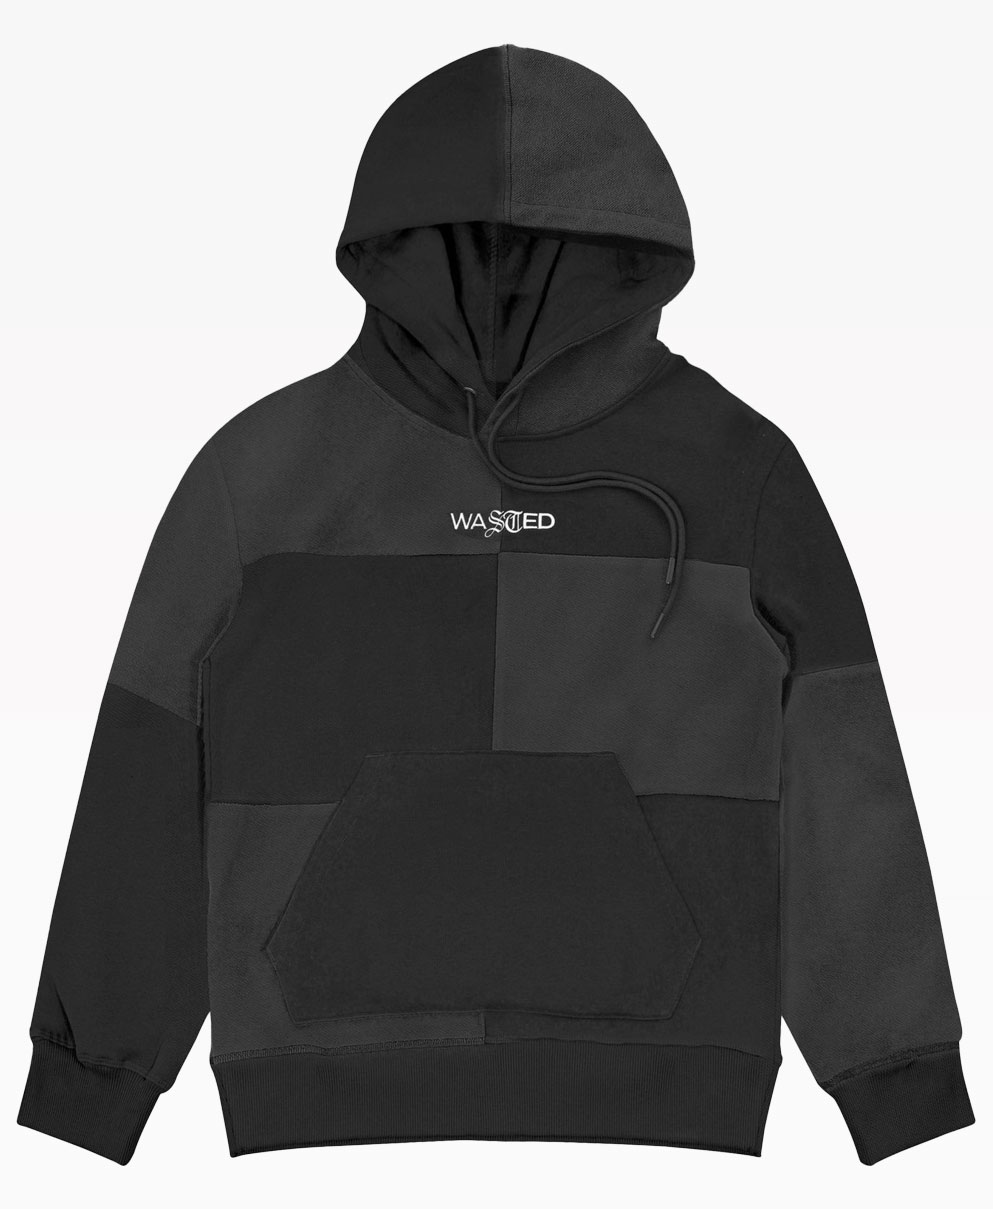 Wasted Patchwork Hoodie Black Front